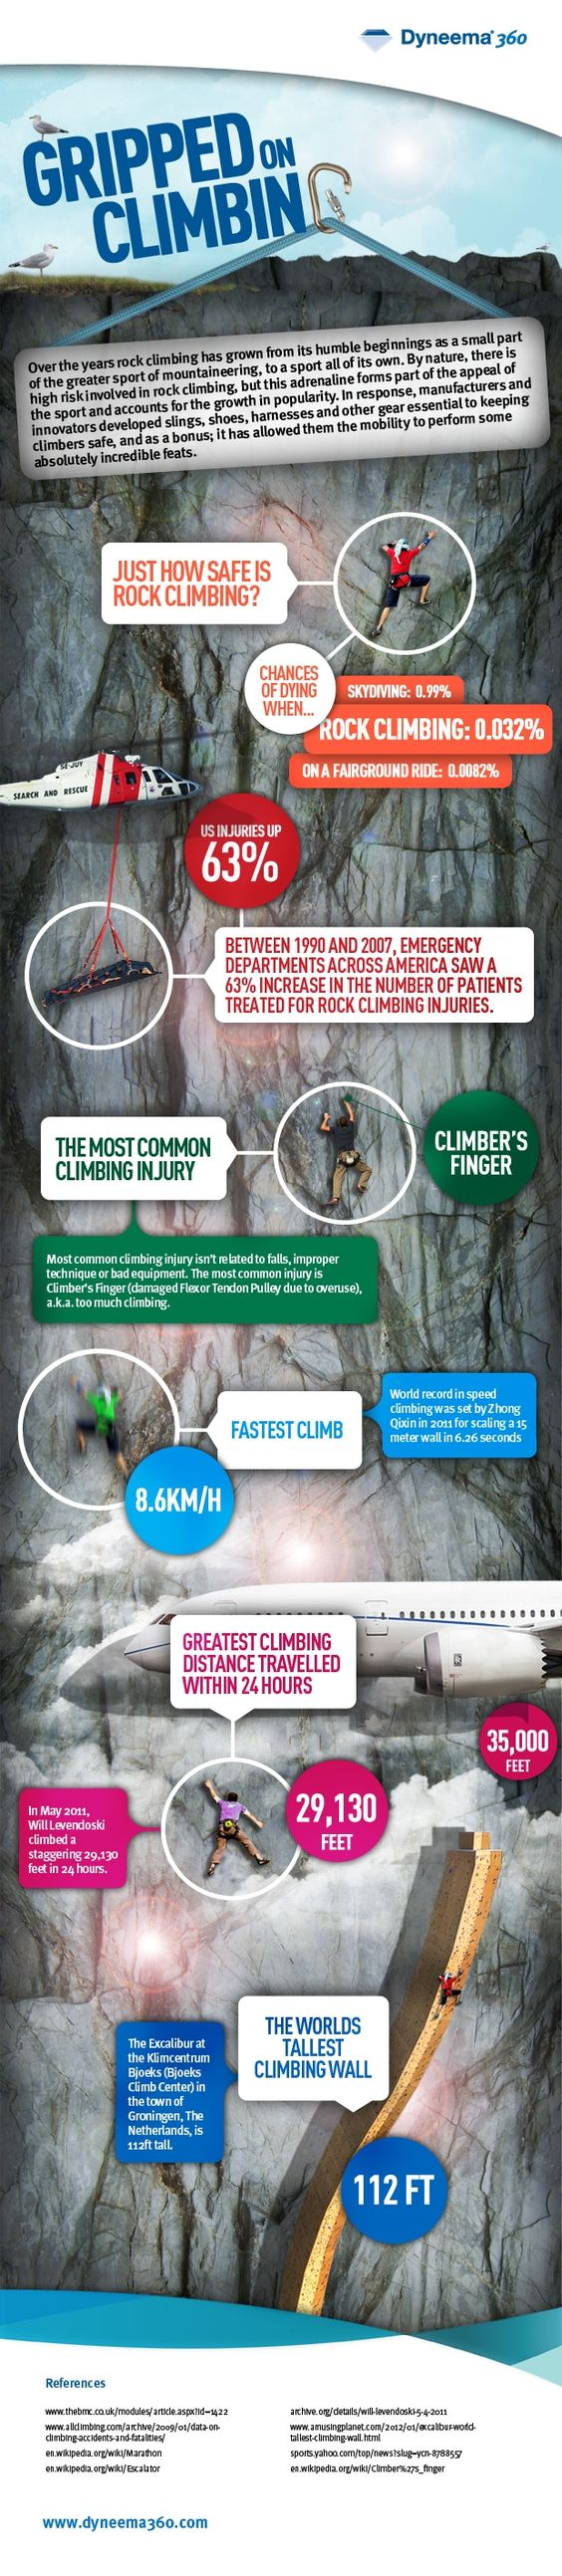 Interesting rock climbing facts